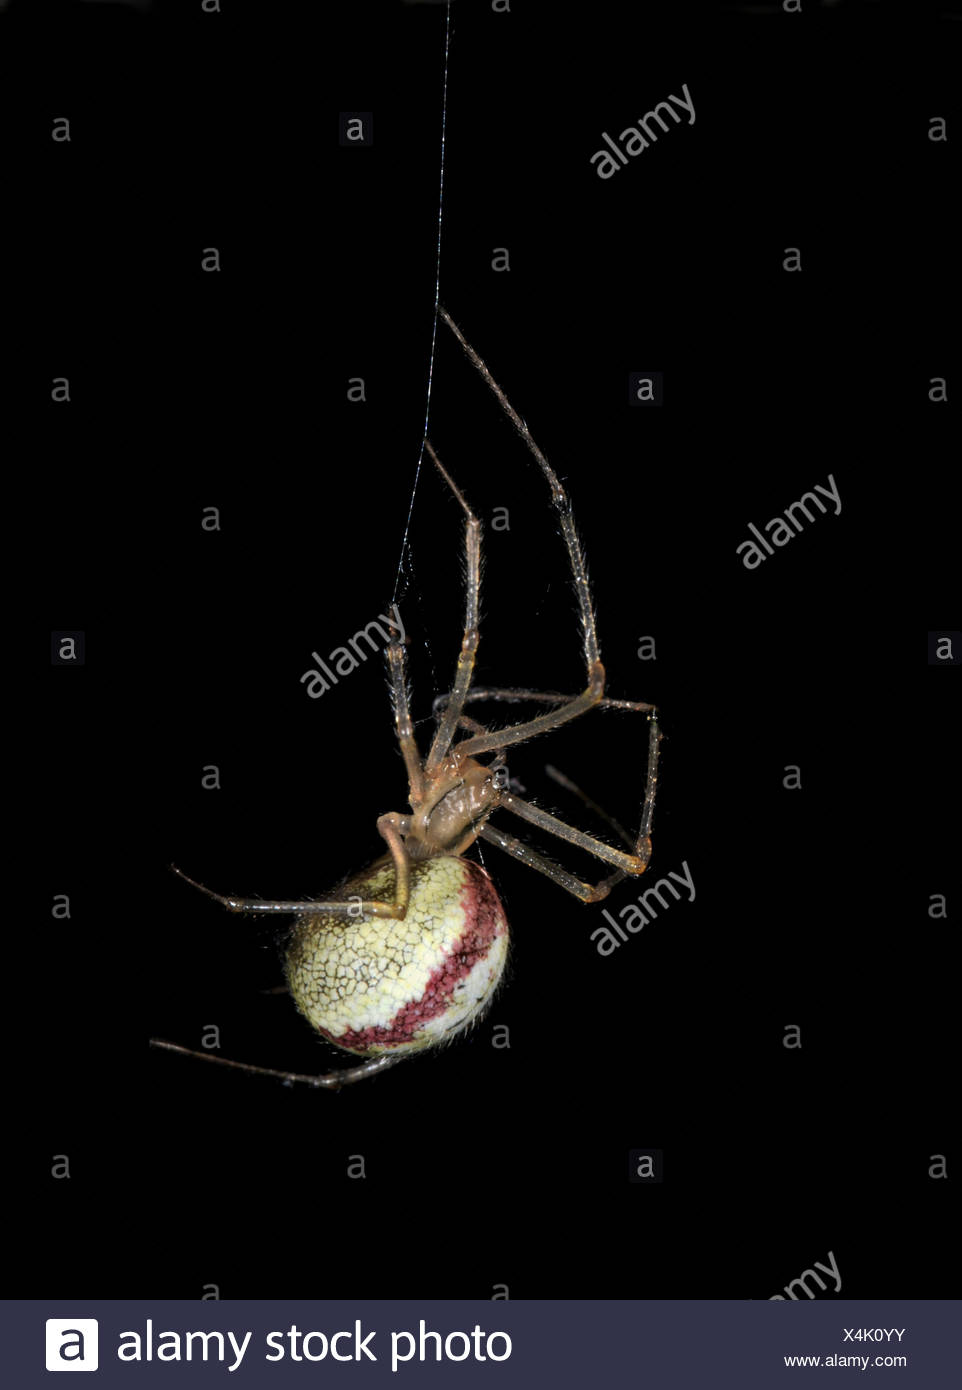 Comb-footed Spider - Enoplognatha ovata - Stock Image